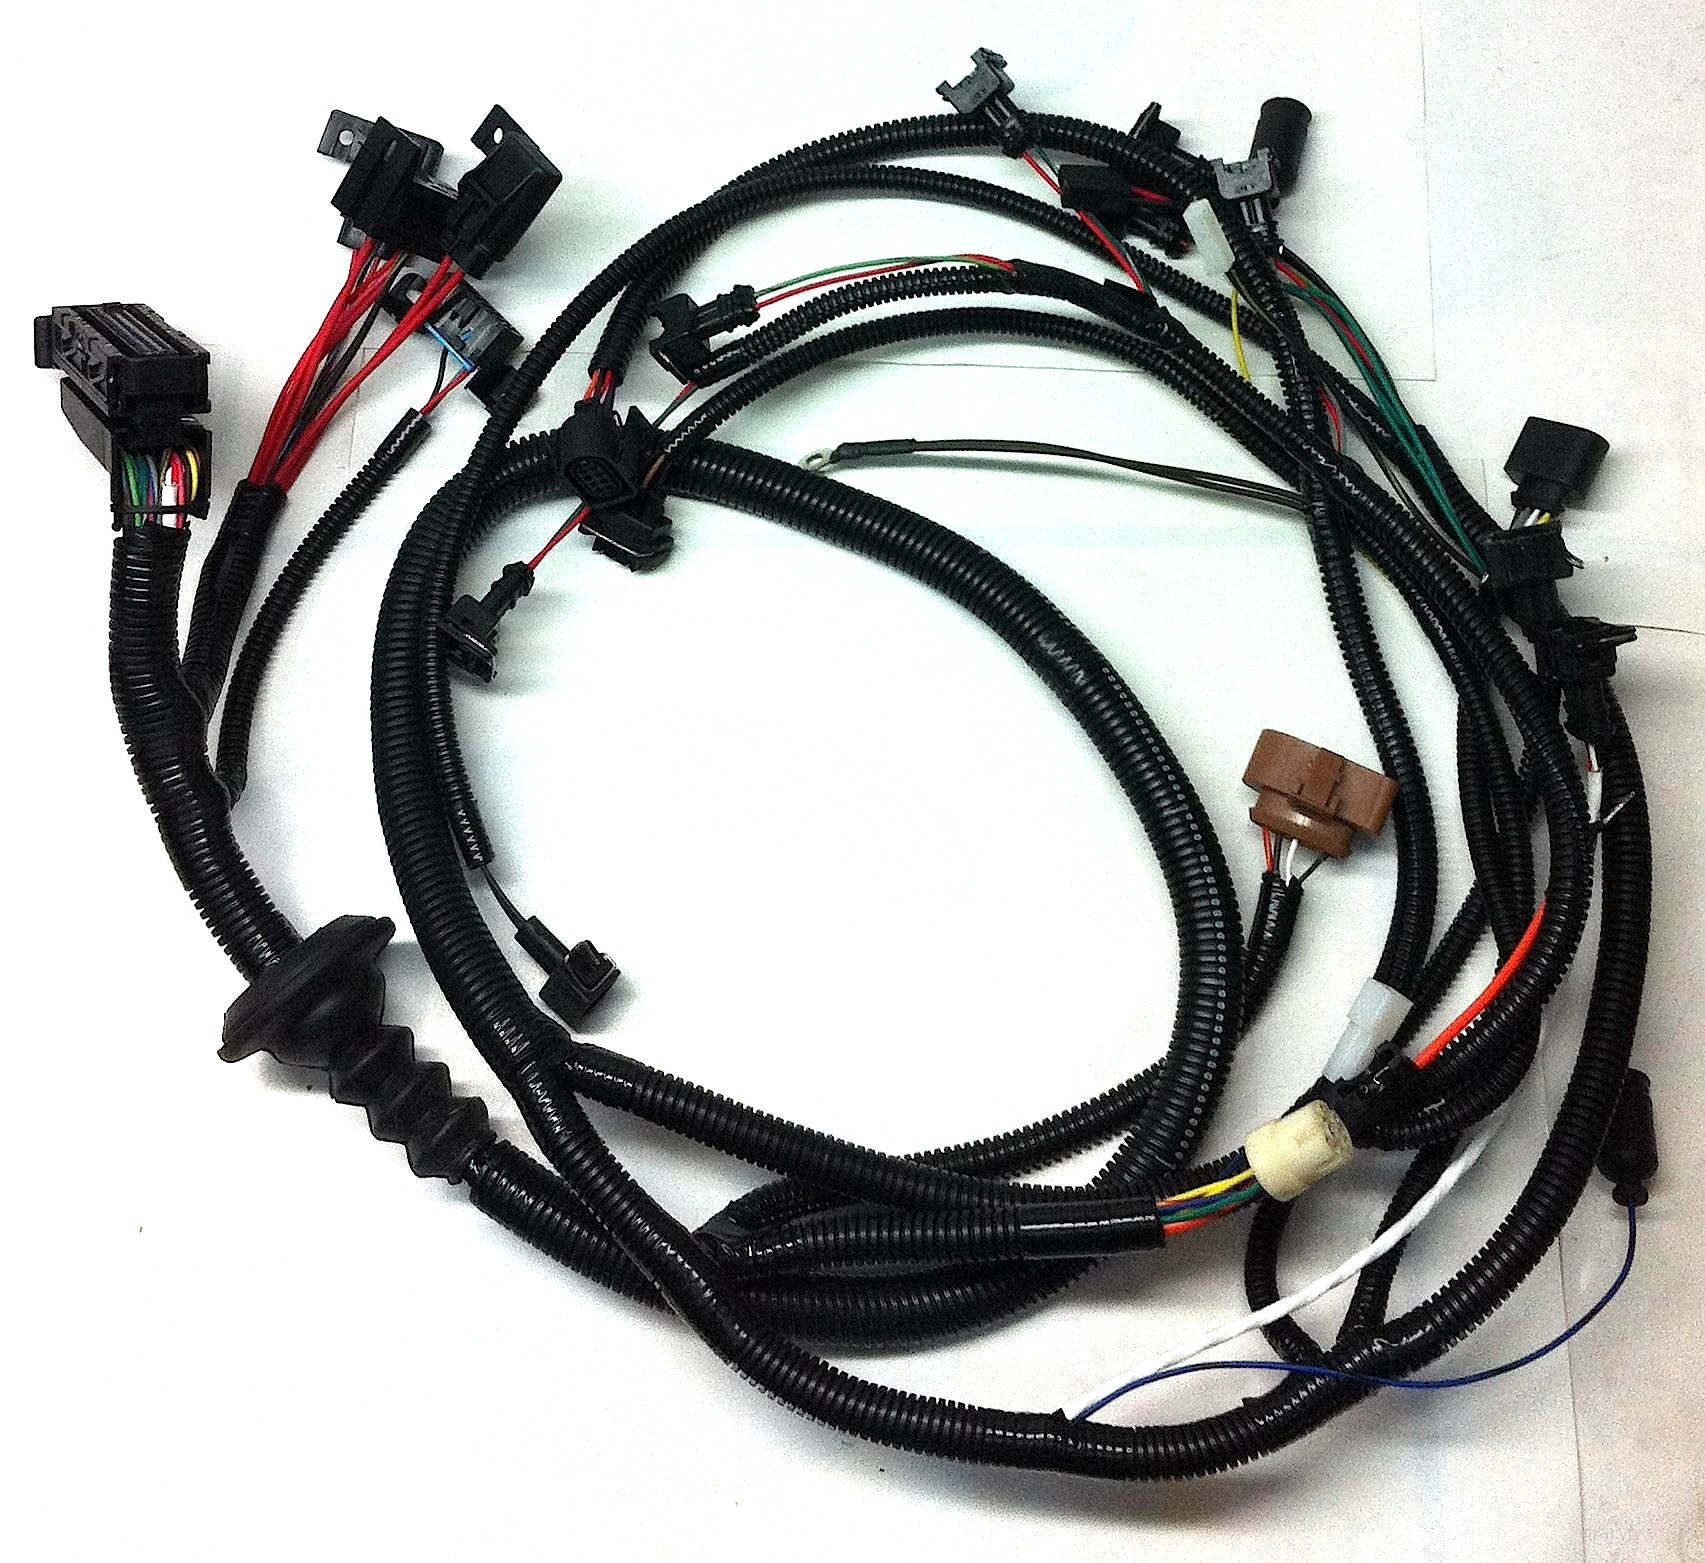 Wiring_Harness_2LR 2lr tiico conversion wiring harness foreign auto & supply, inc replacement engine wiring harness at crackthecode.co